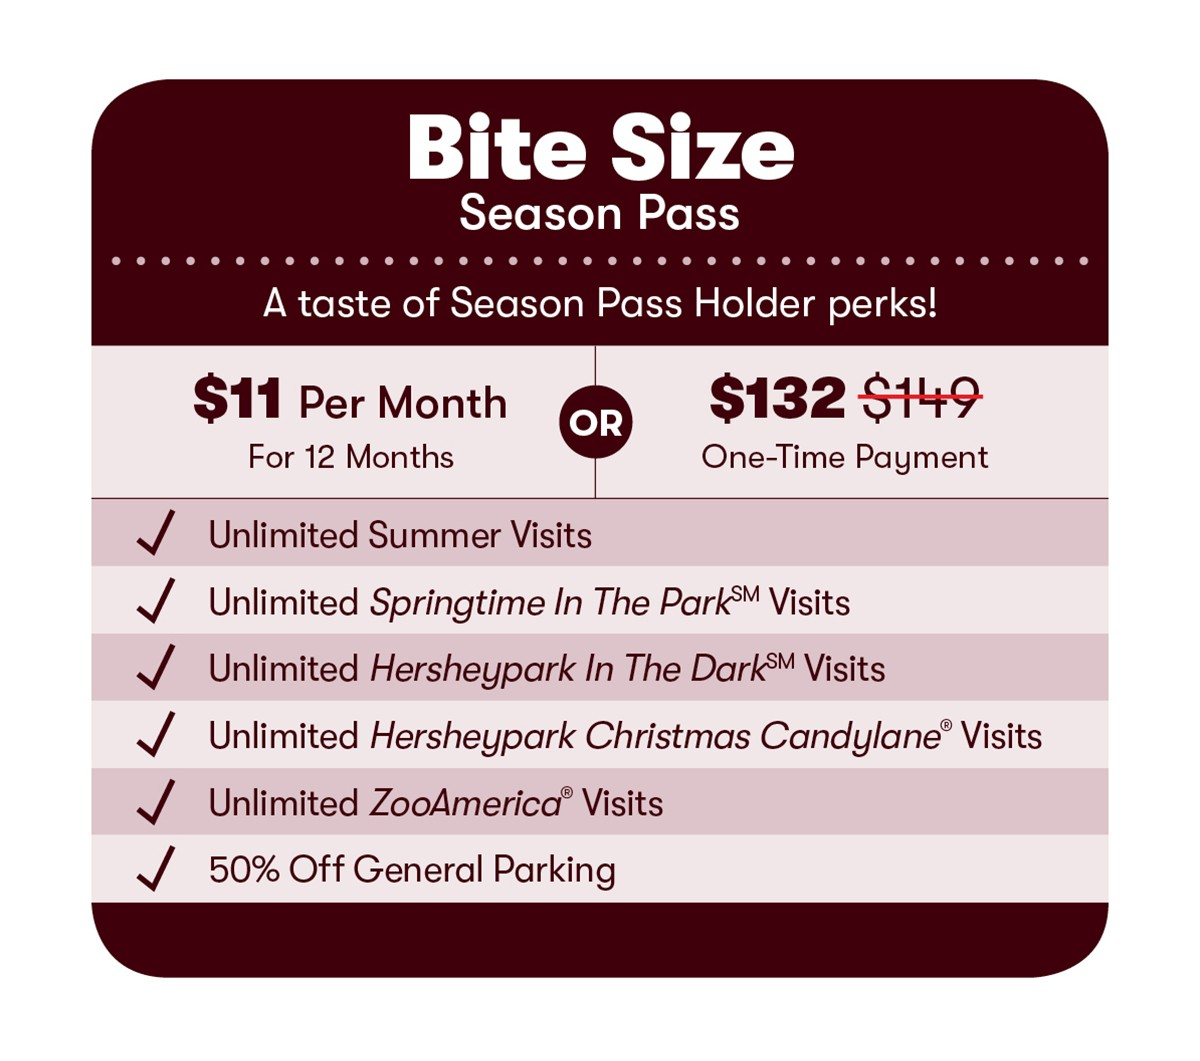 2020 Bite Size Season Pass